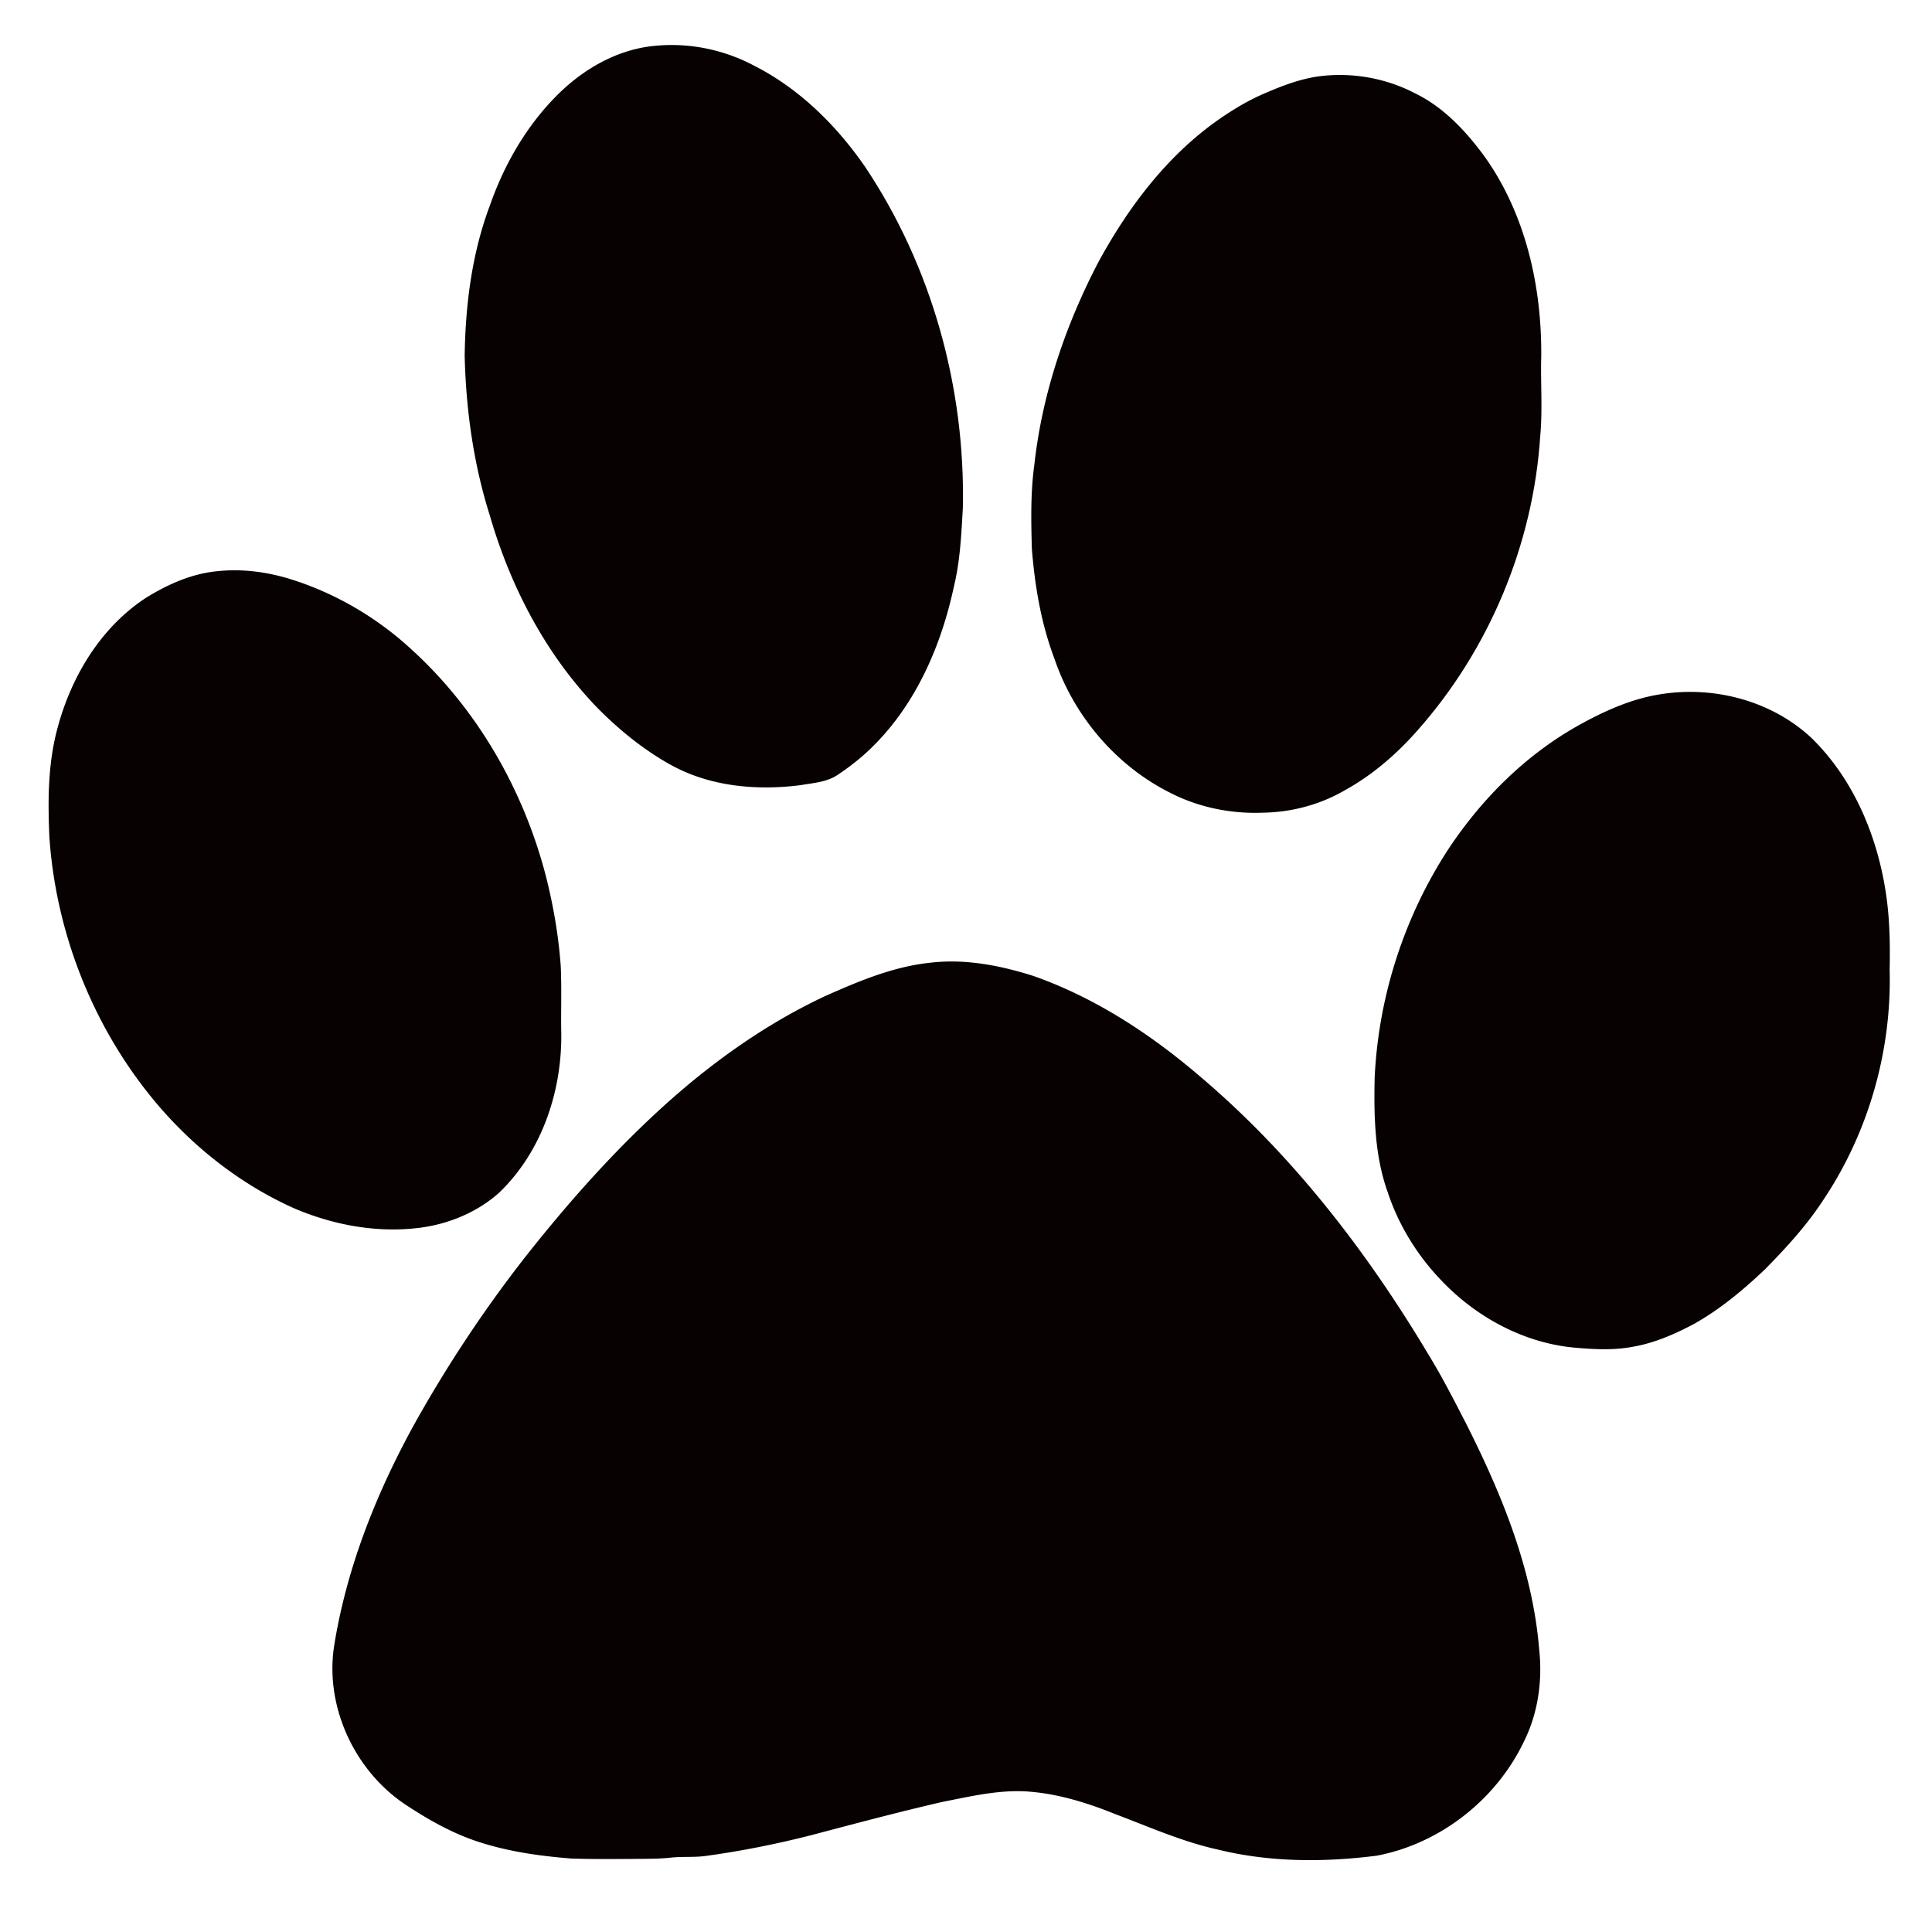 Png hd transparent images. Fossil clipart paw print clipart library library